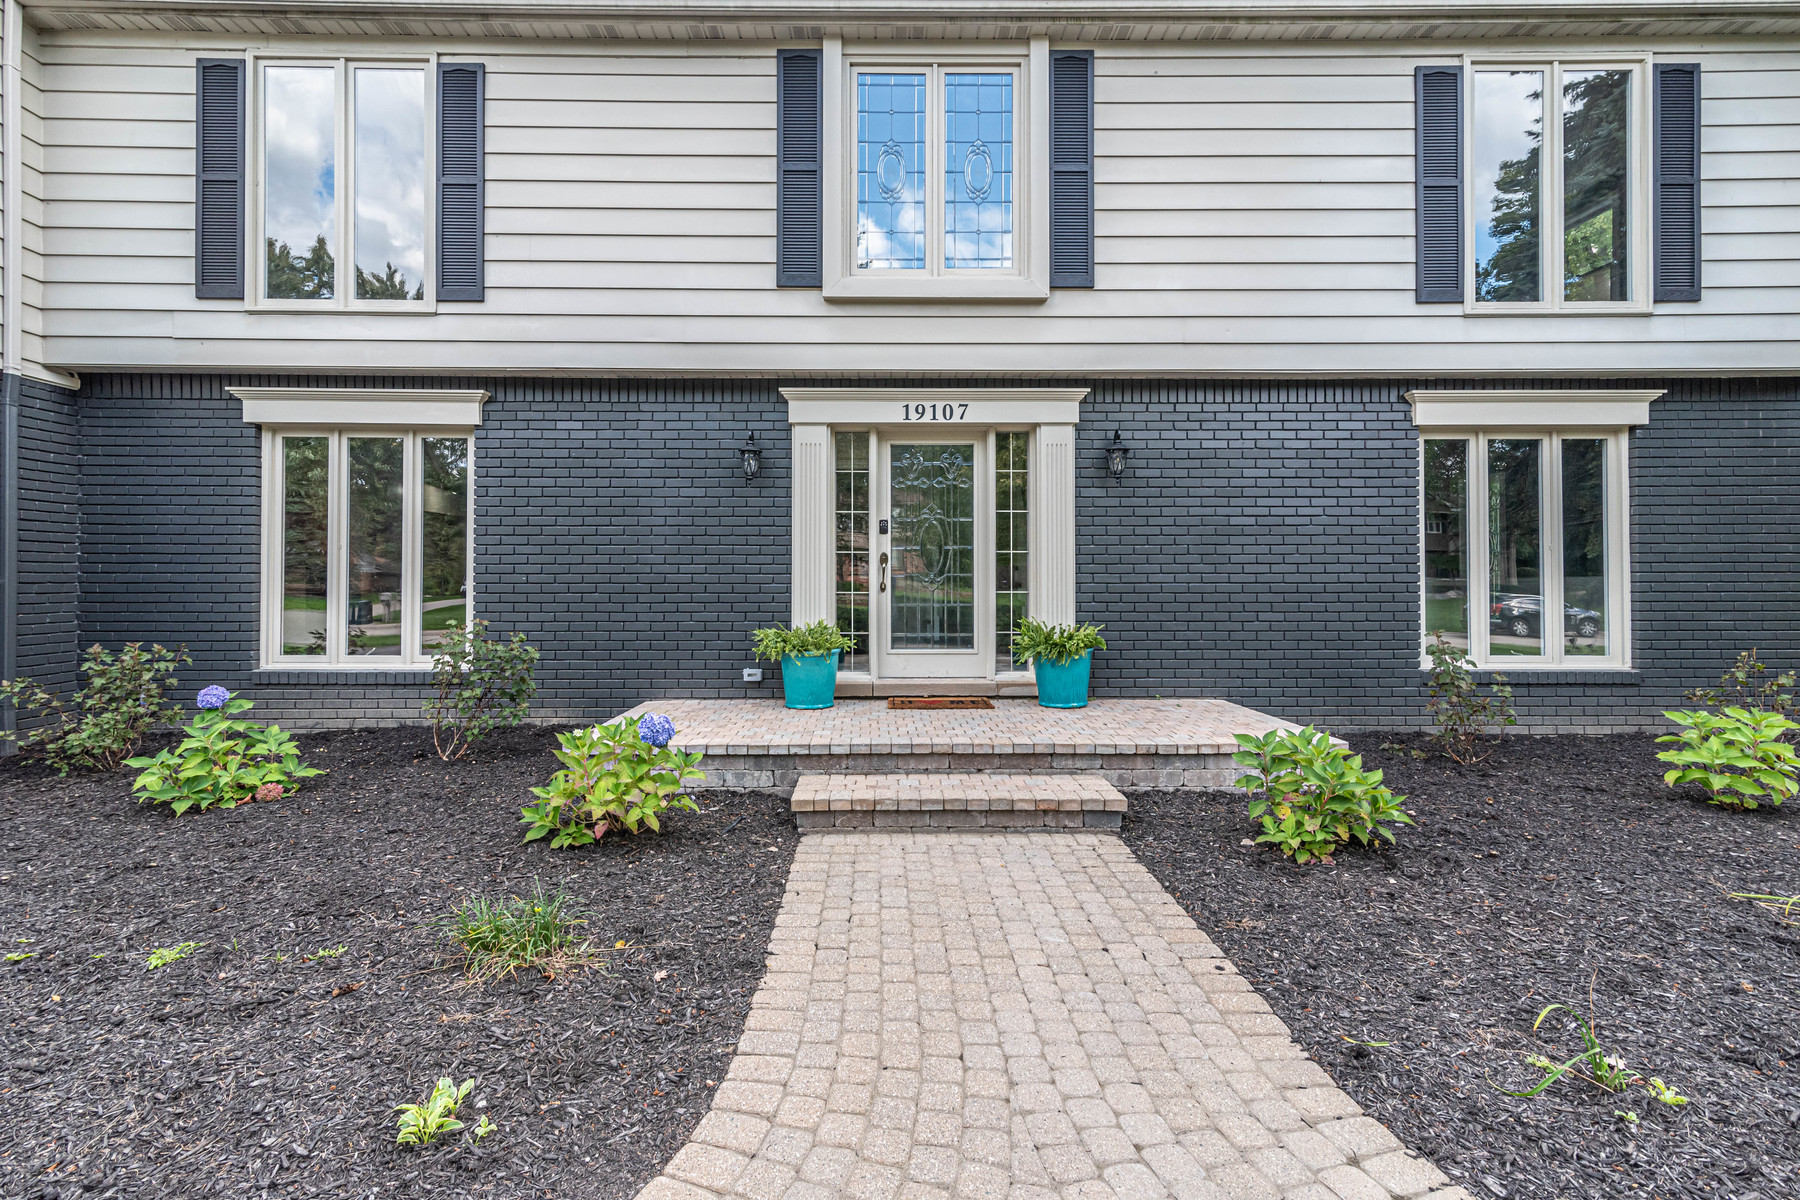 Single Family Homes for Sale at Beverly Hills Village 19107 Chelton Drive Franklin, Michigan 48025 United States